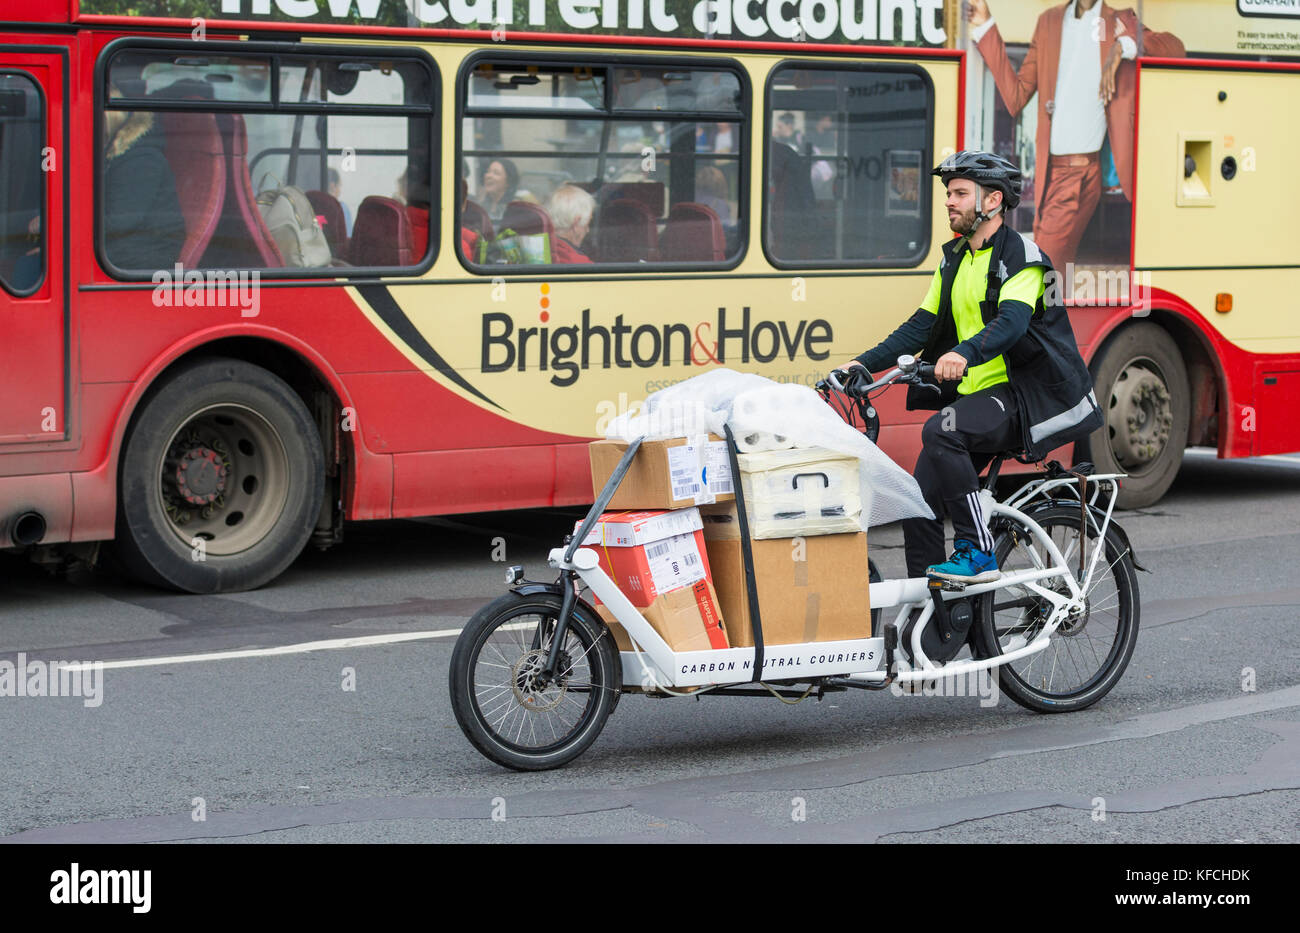 Cyclist on a pedal powered delivery vehicle working for Carbon Neutral Couriers, making deliveries in the city in - Stock Image